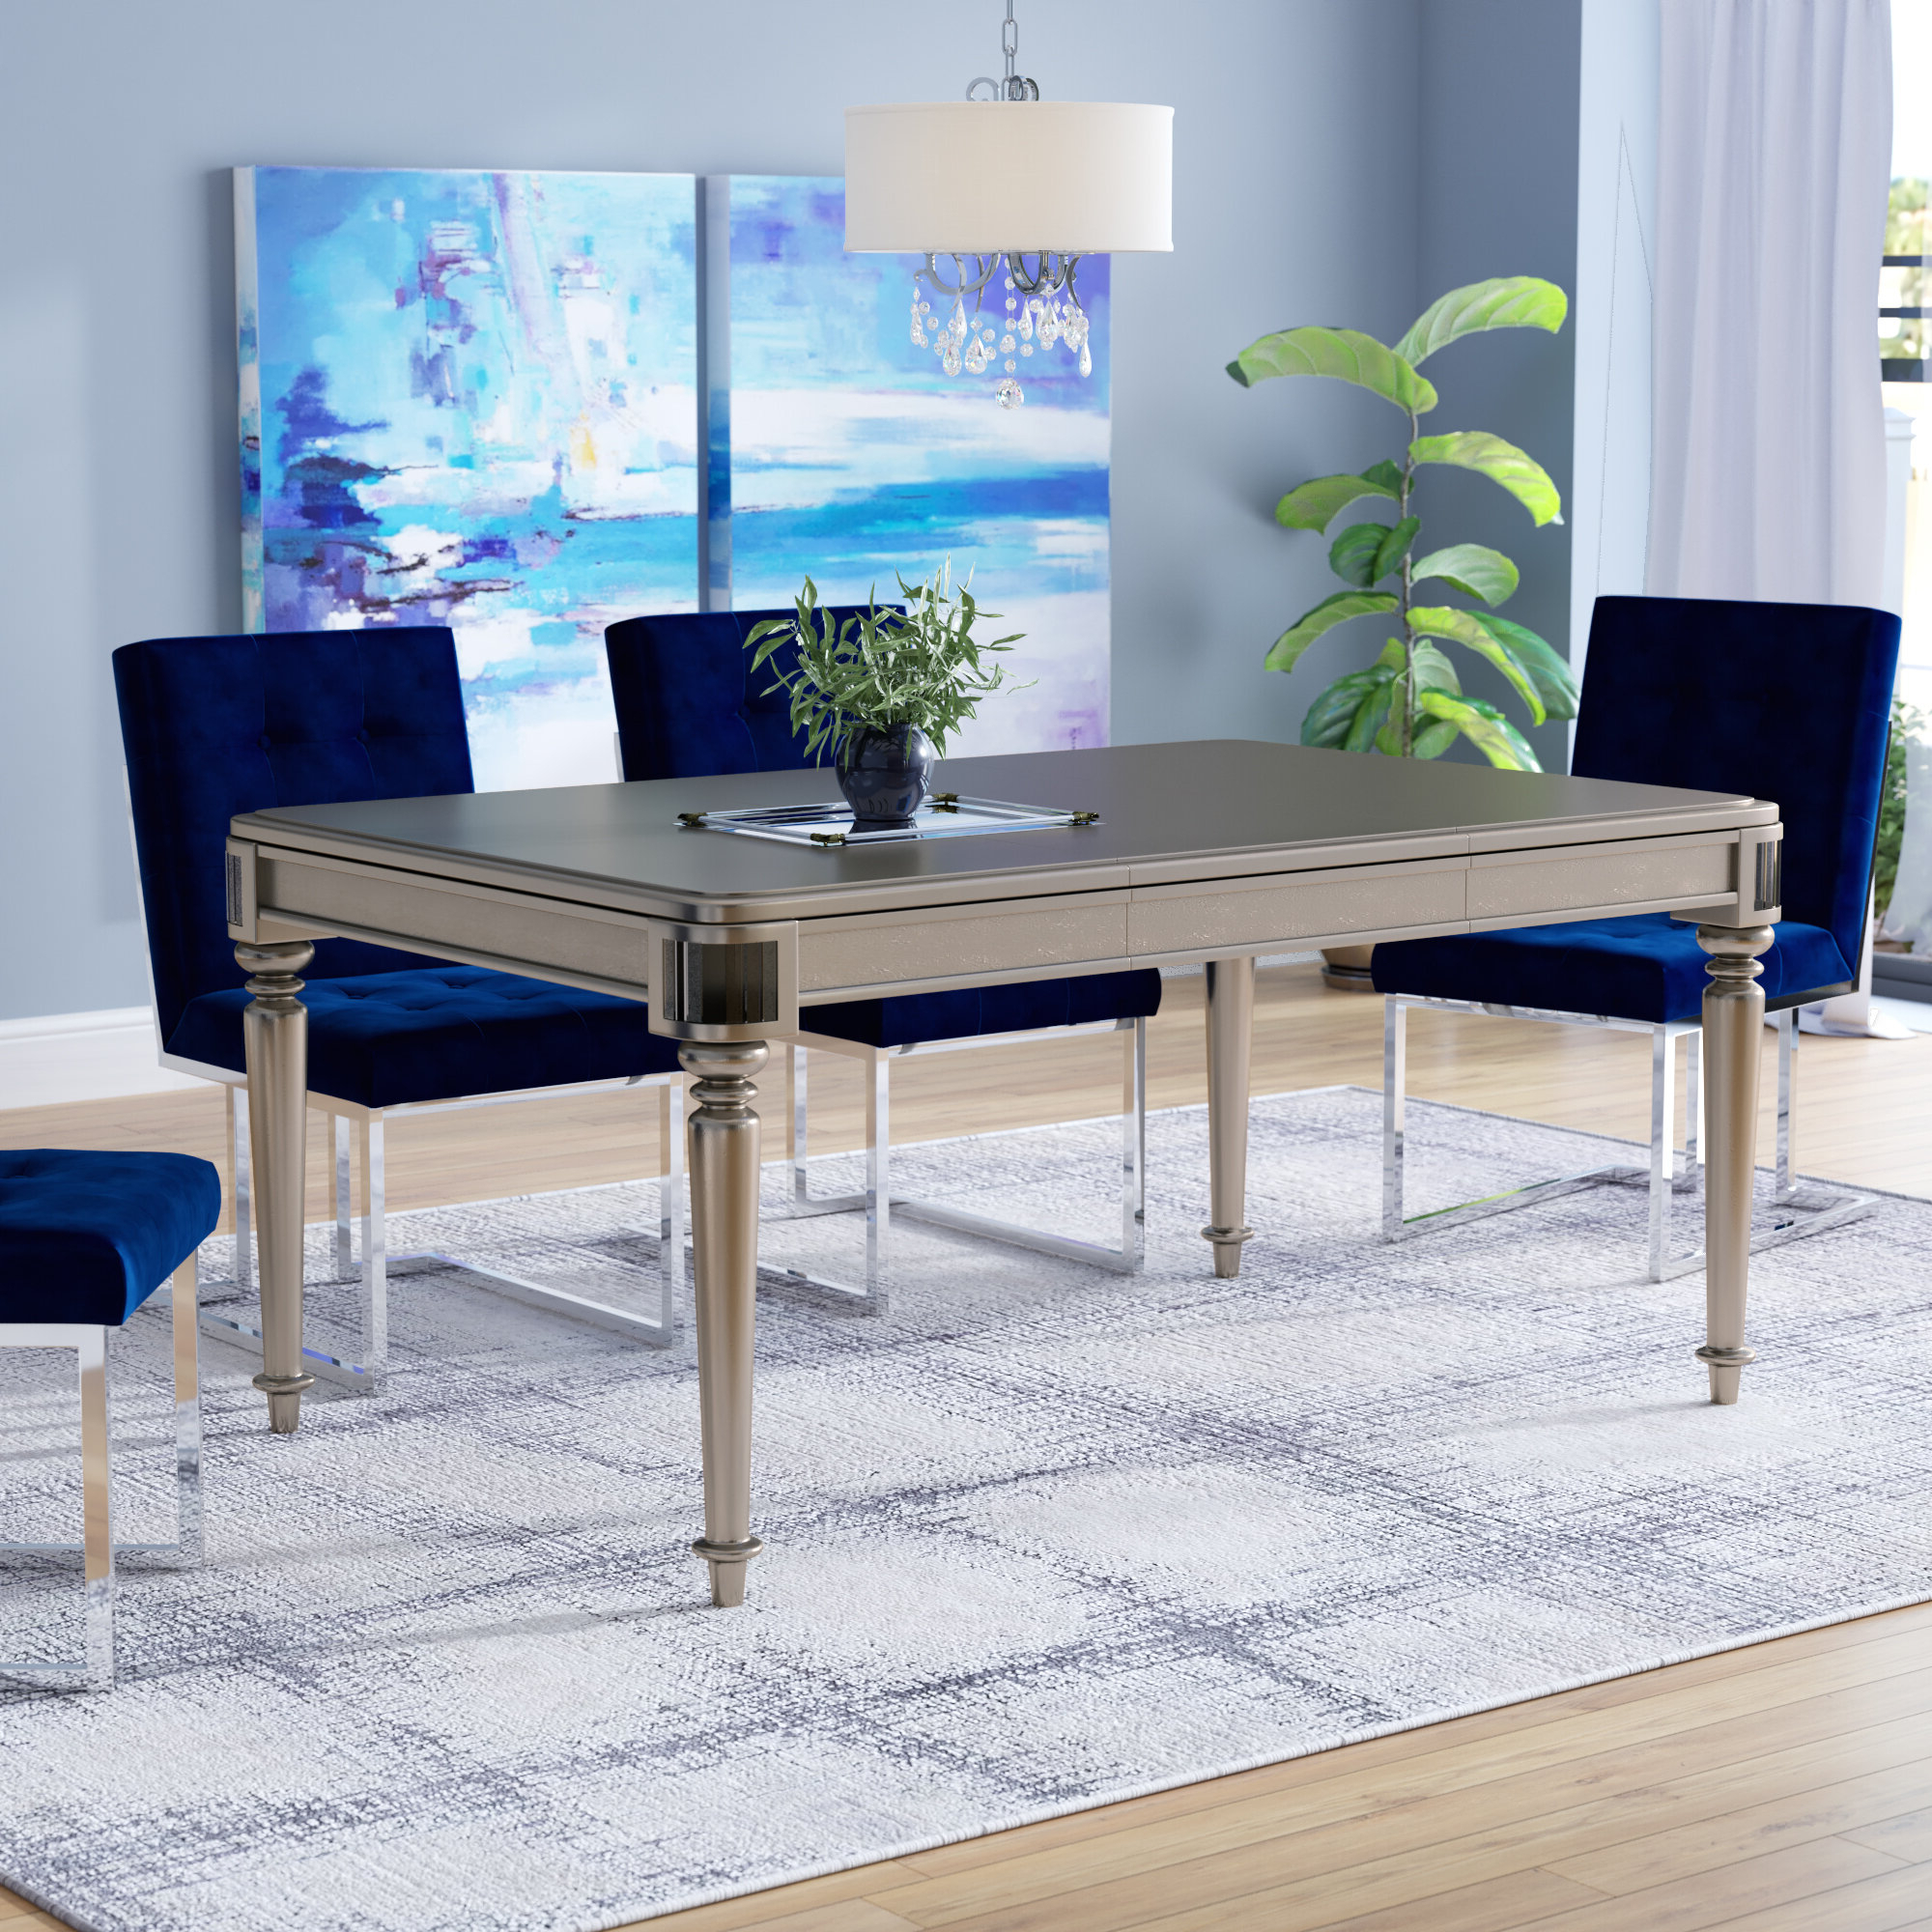 Preferred Transitional 4 Seating Drop Leaf Casual Dining Tables With Regard To House Of Hampton Barney Drop Leaf Extendable Dining Table (View 13 of 30)